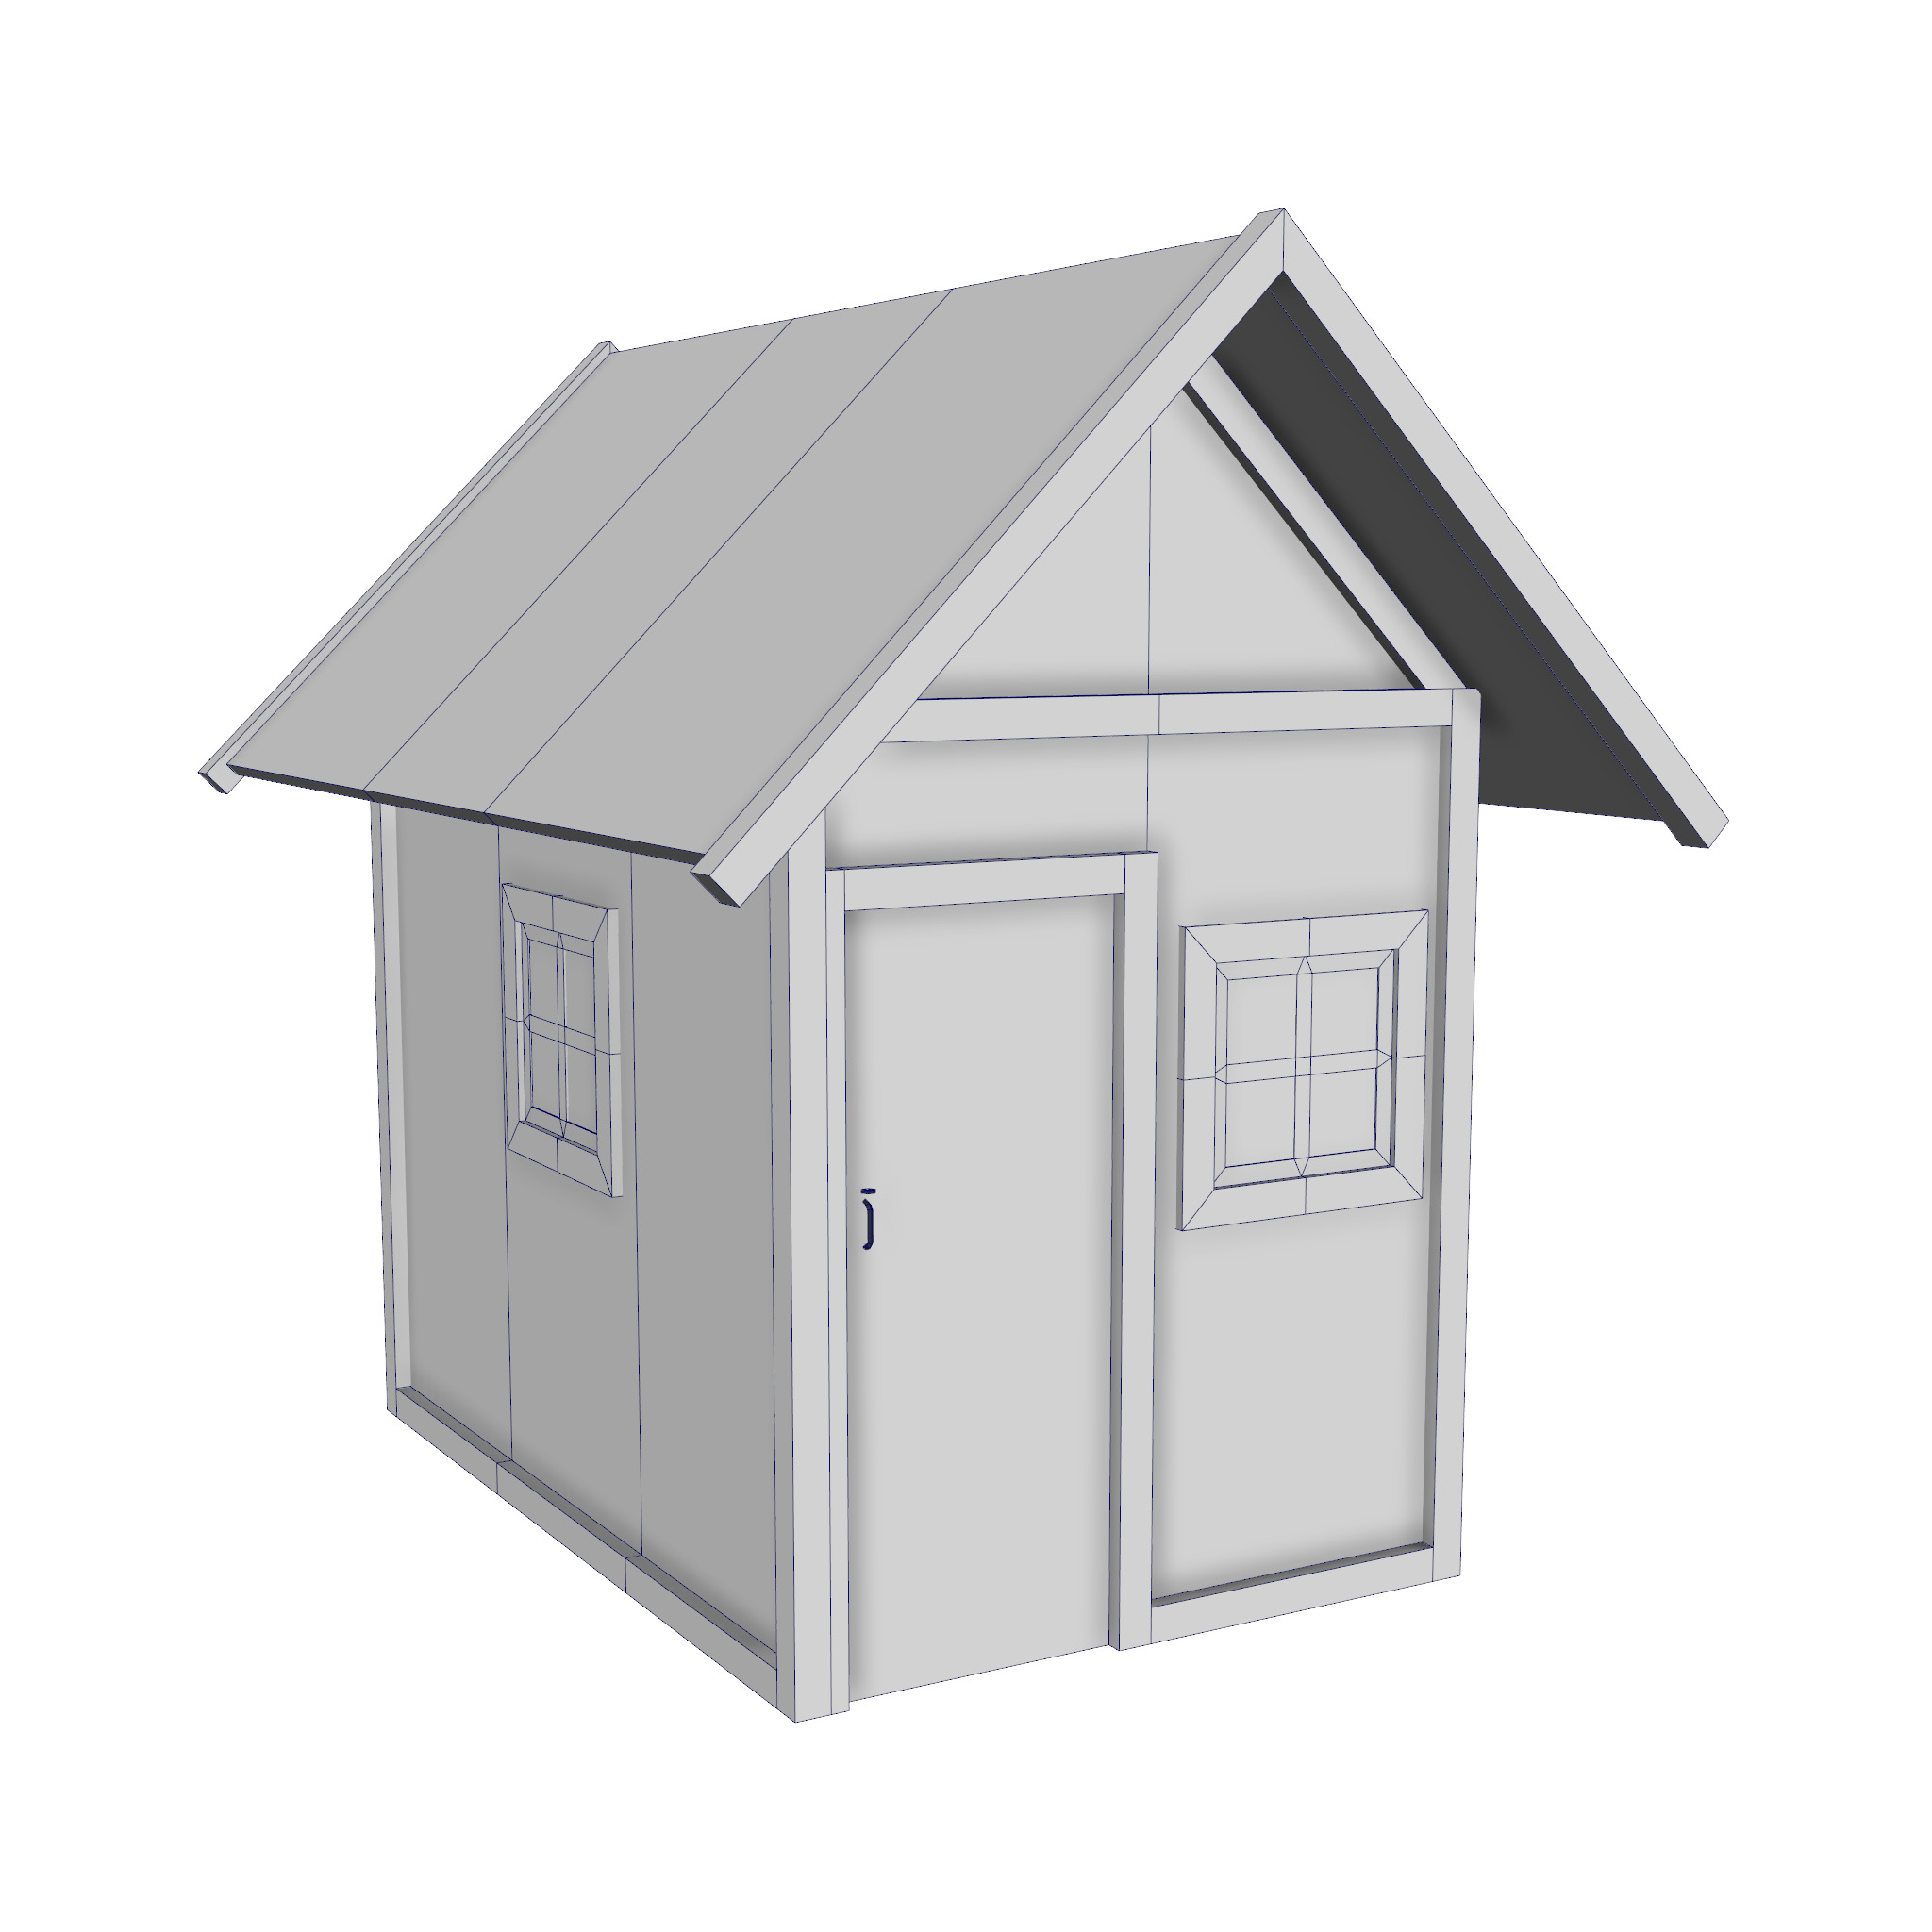 modular wood house set 3d model fbx ma mb 271454